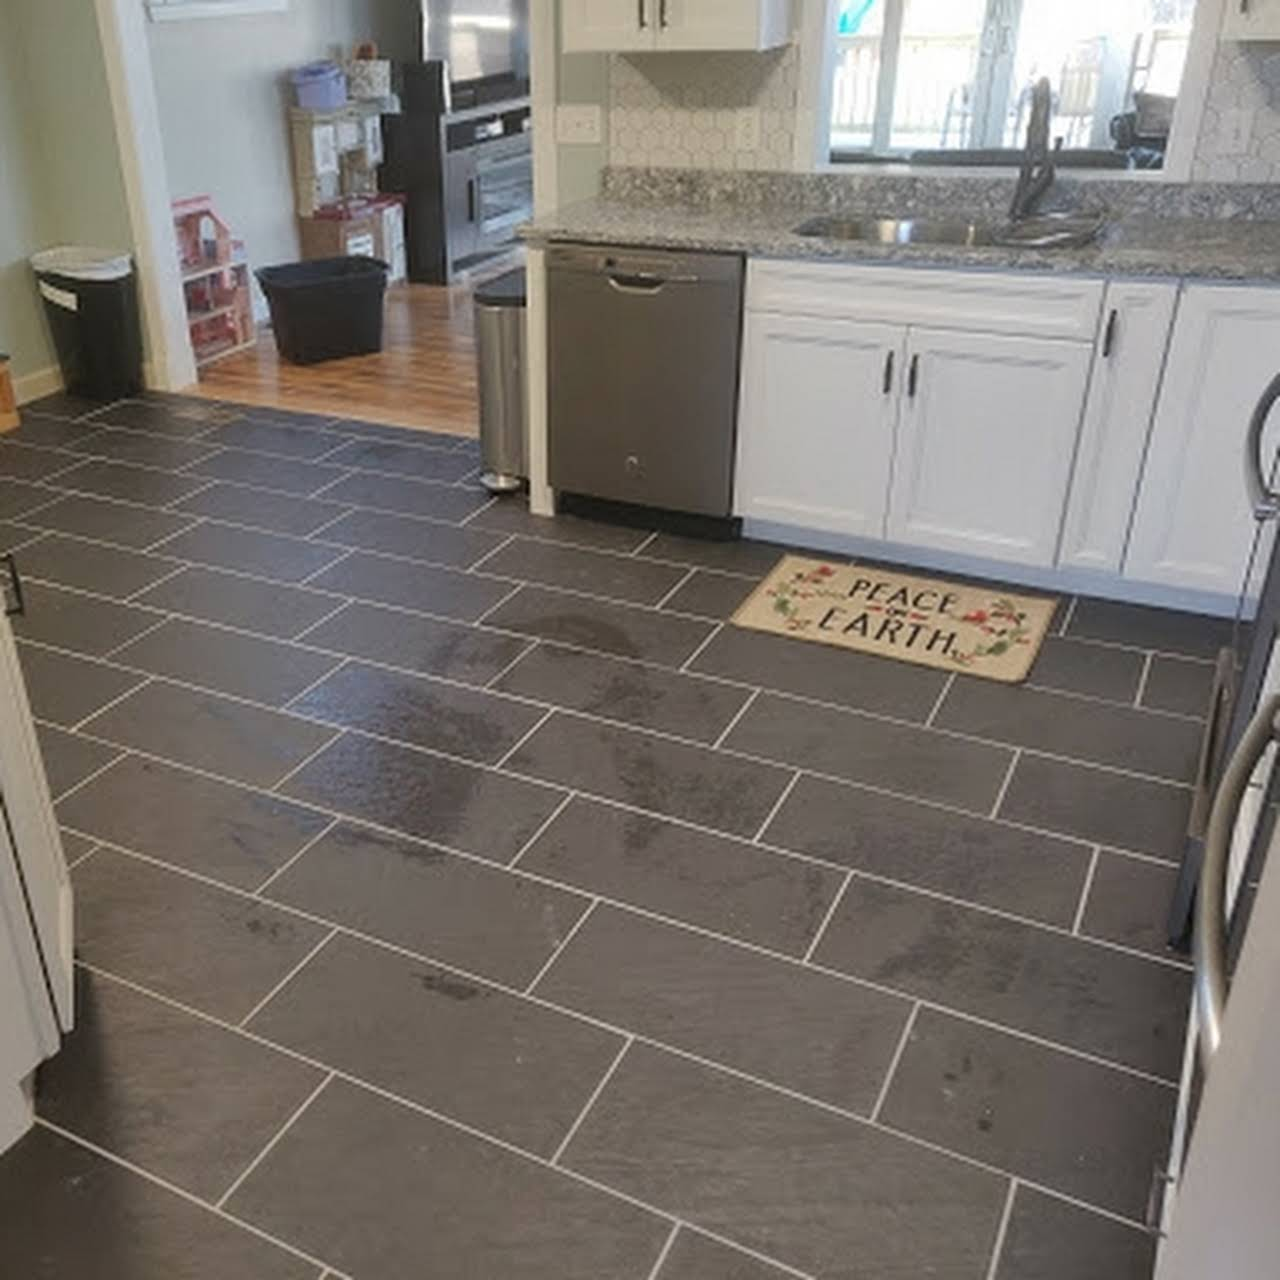 12 X 24 Floor Tile Patterns. Steve S Tile Flooring Installation Residential Tile Flooring Installer And Contractor For South Shore Cape Cod From East Bridgewater Ma